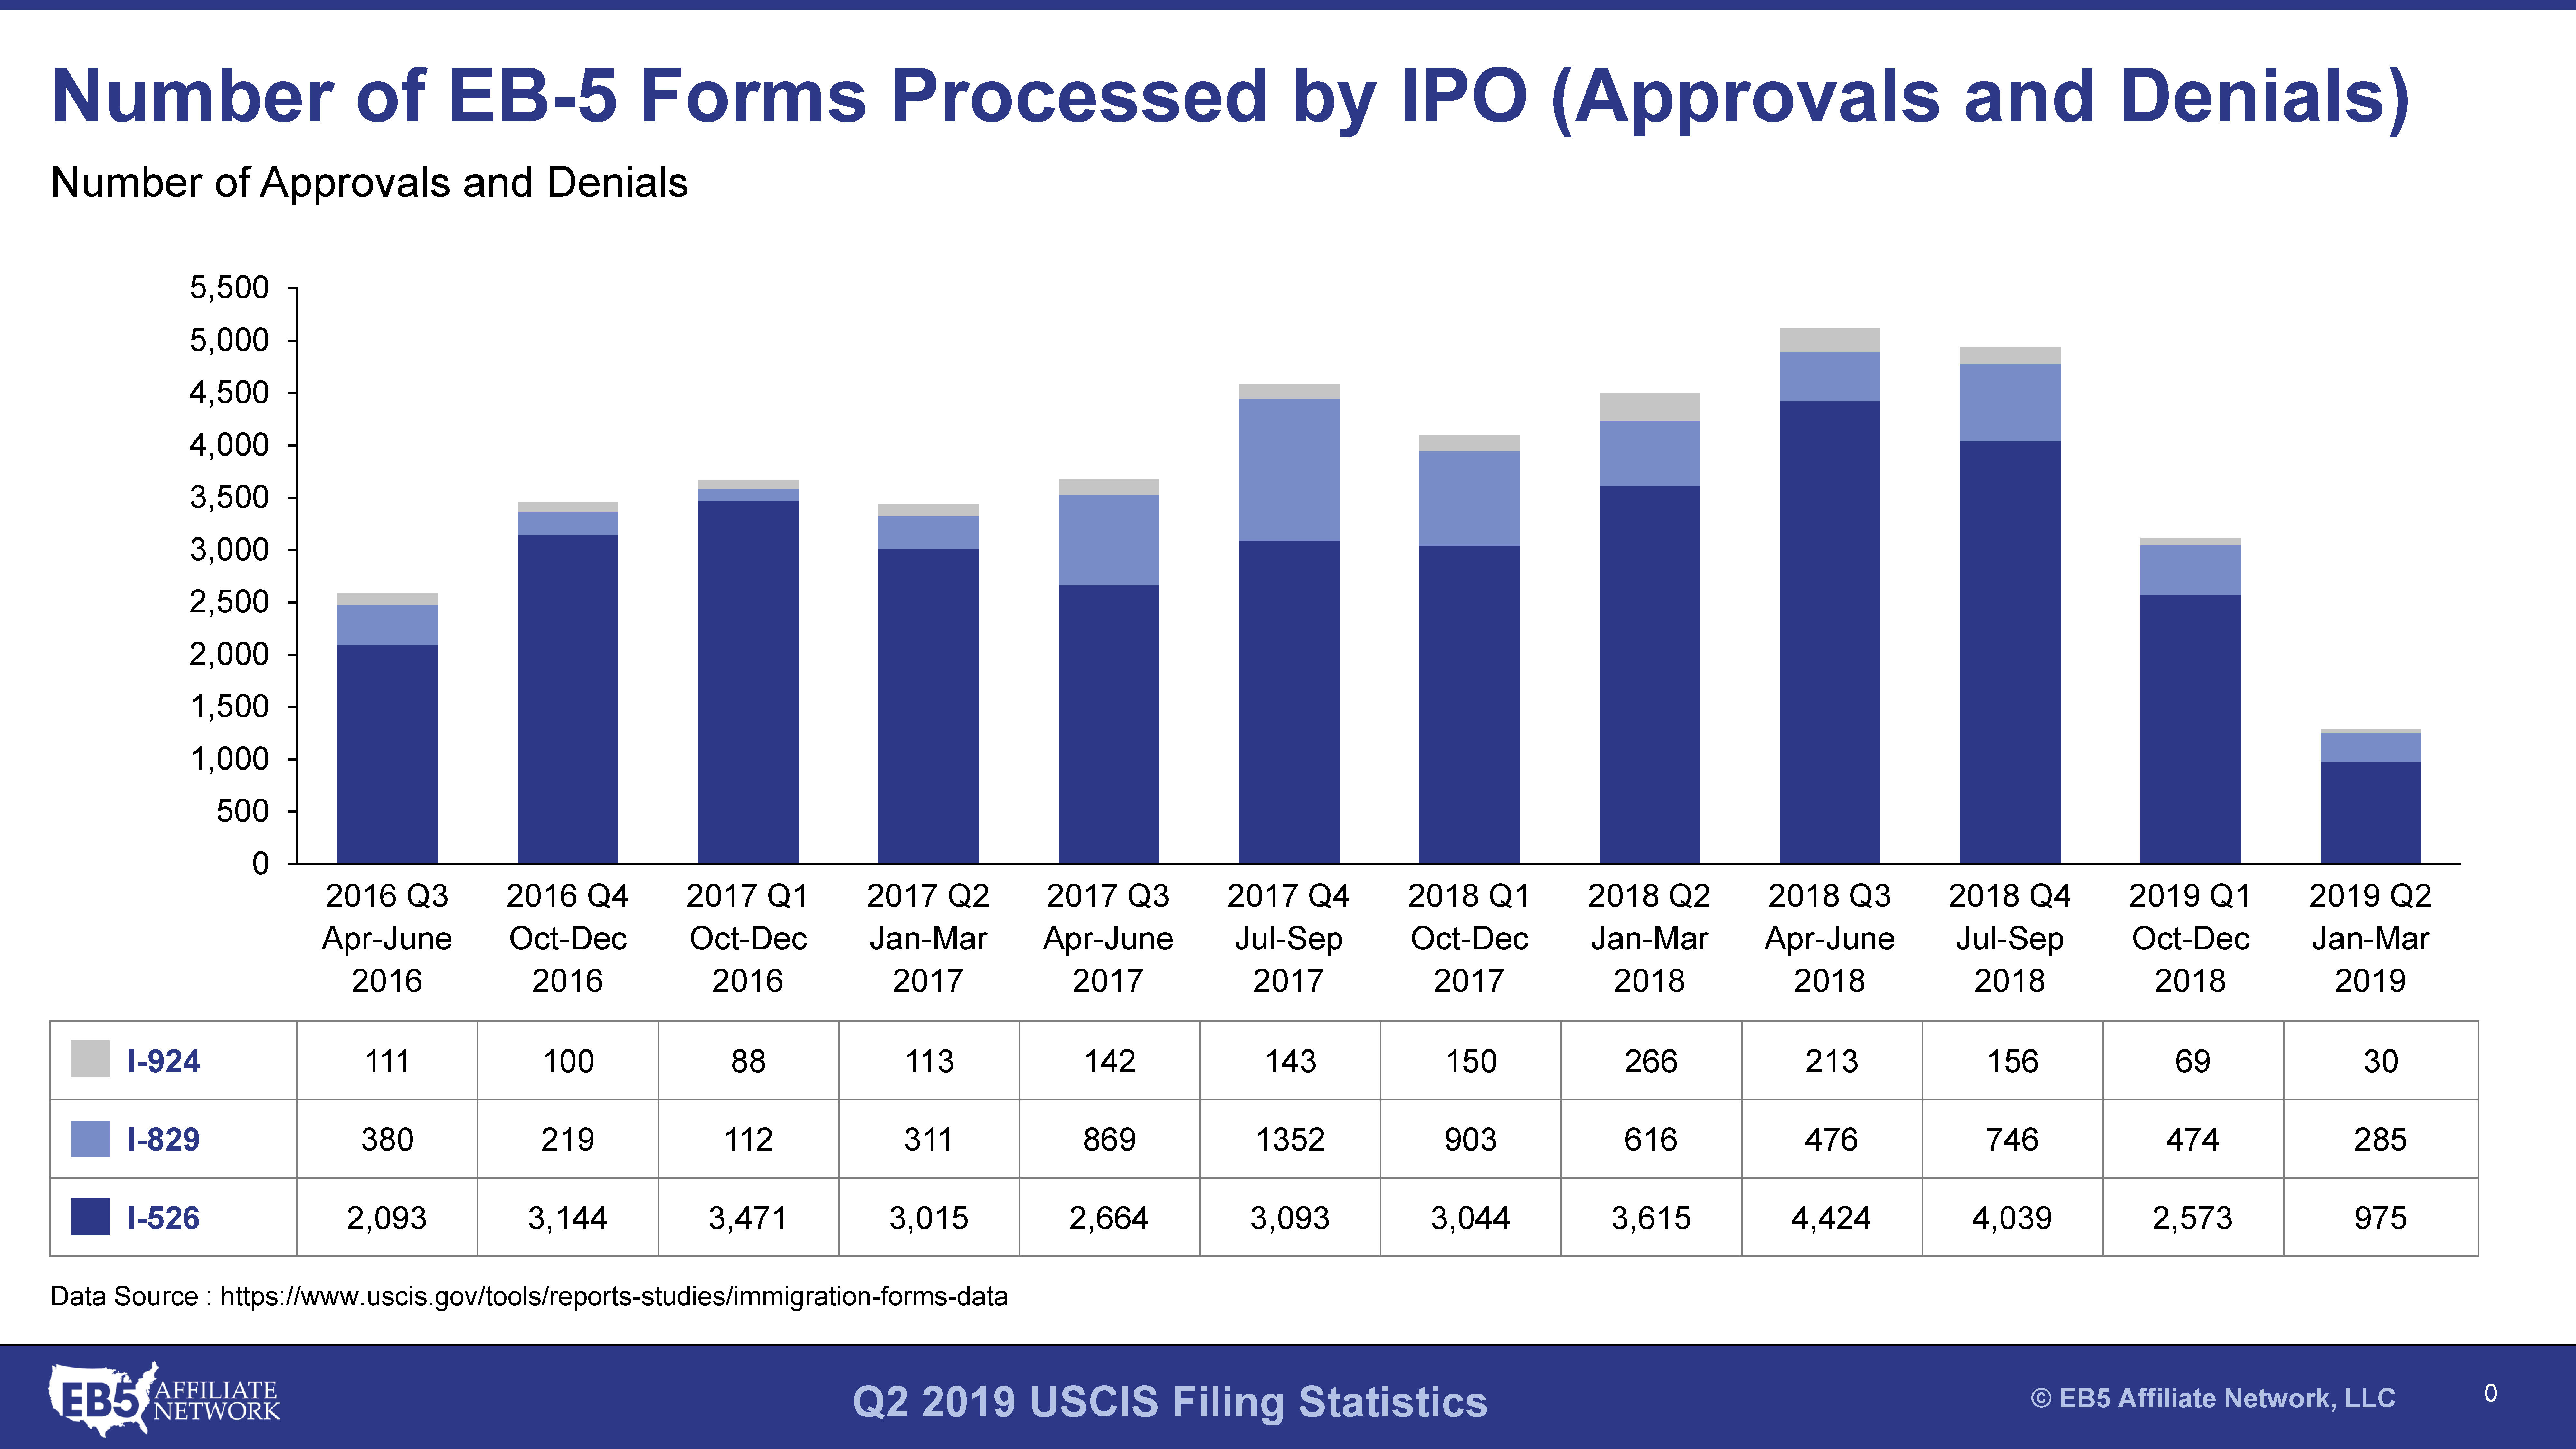 Q2 FY2019 USCIS Statistics for EB-5 Petition Processing - EB5